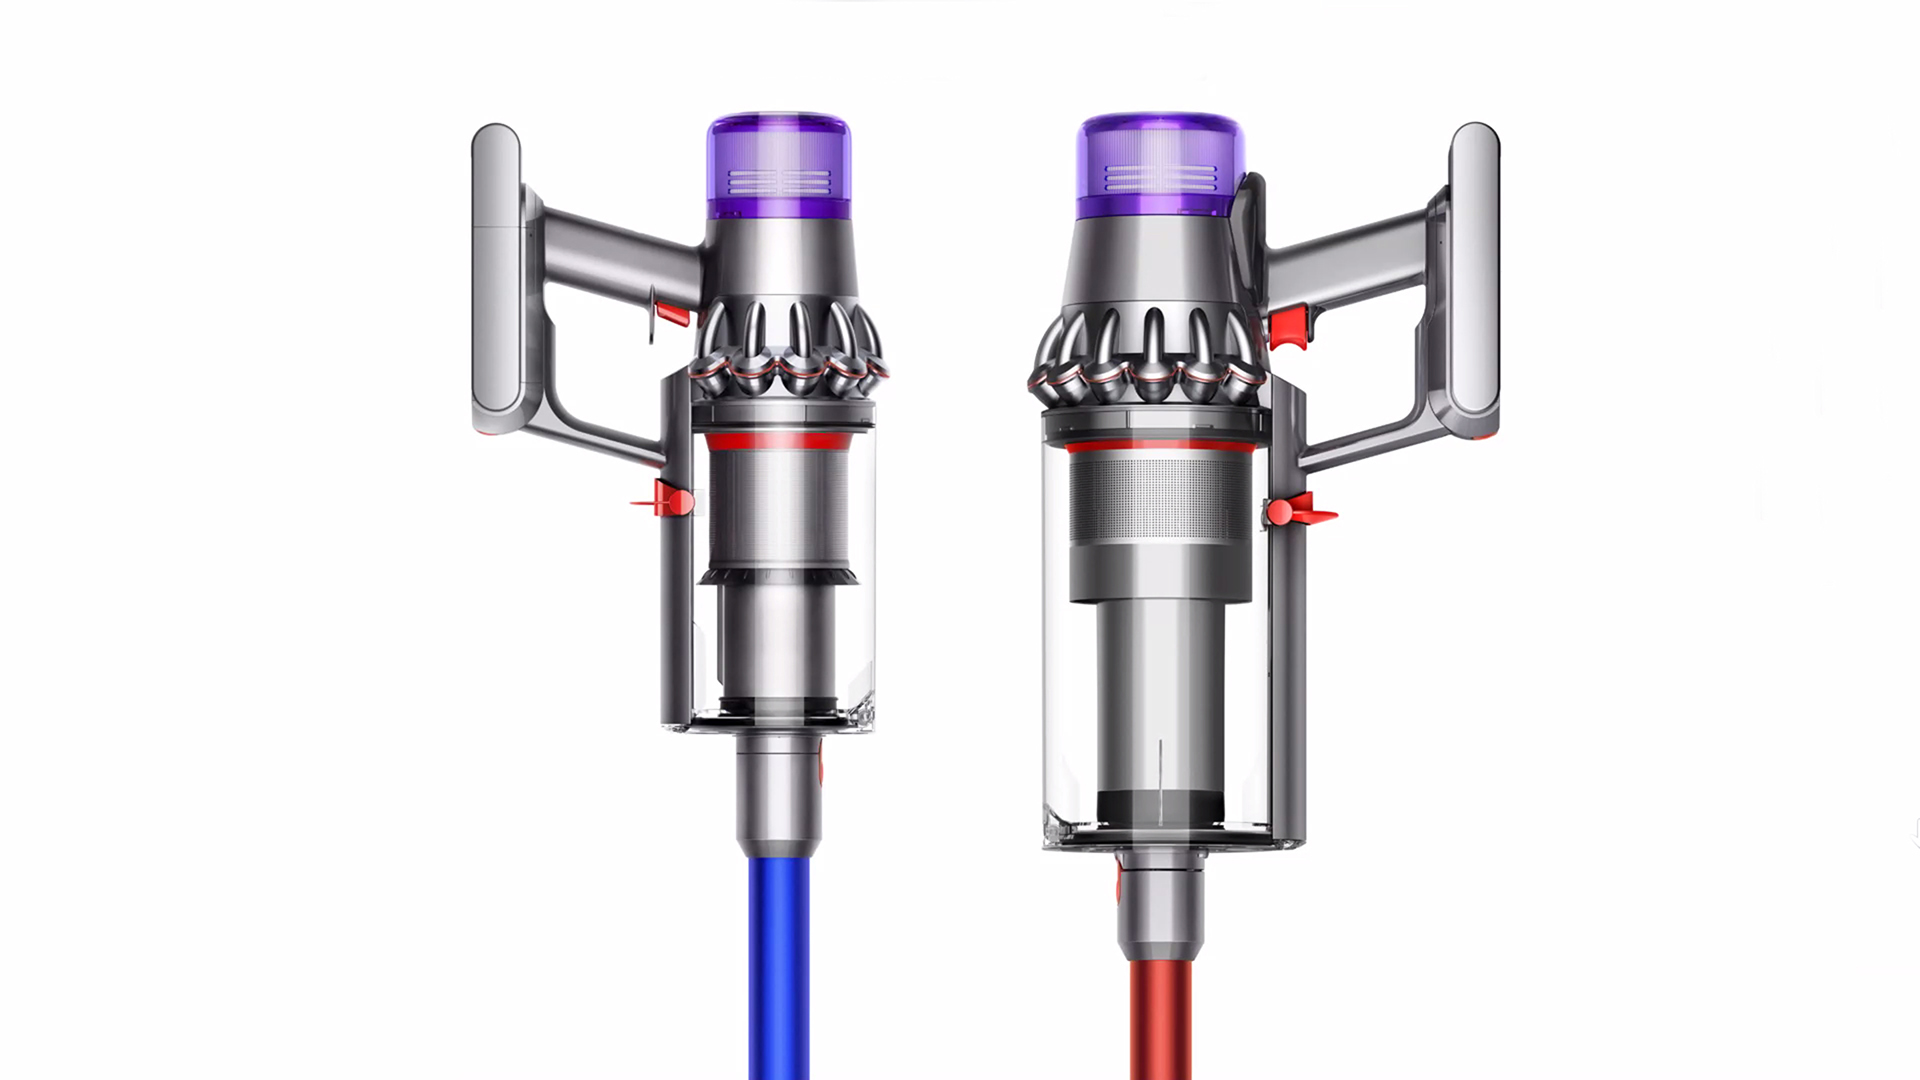 Dyson V11 Outsize comparison